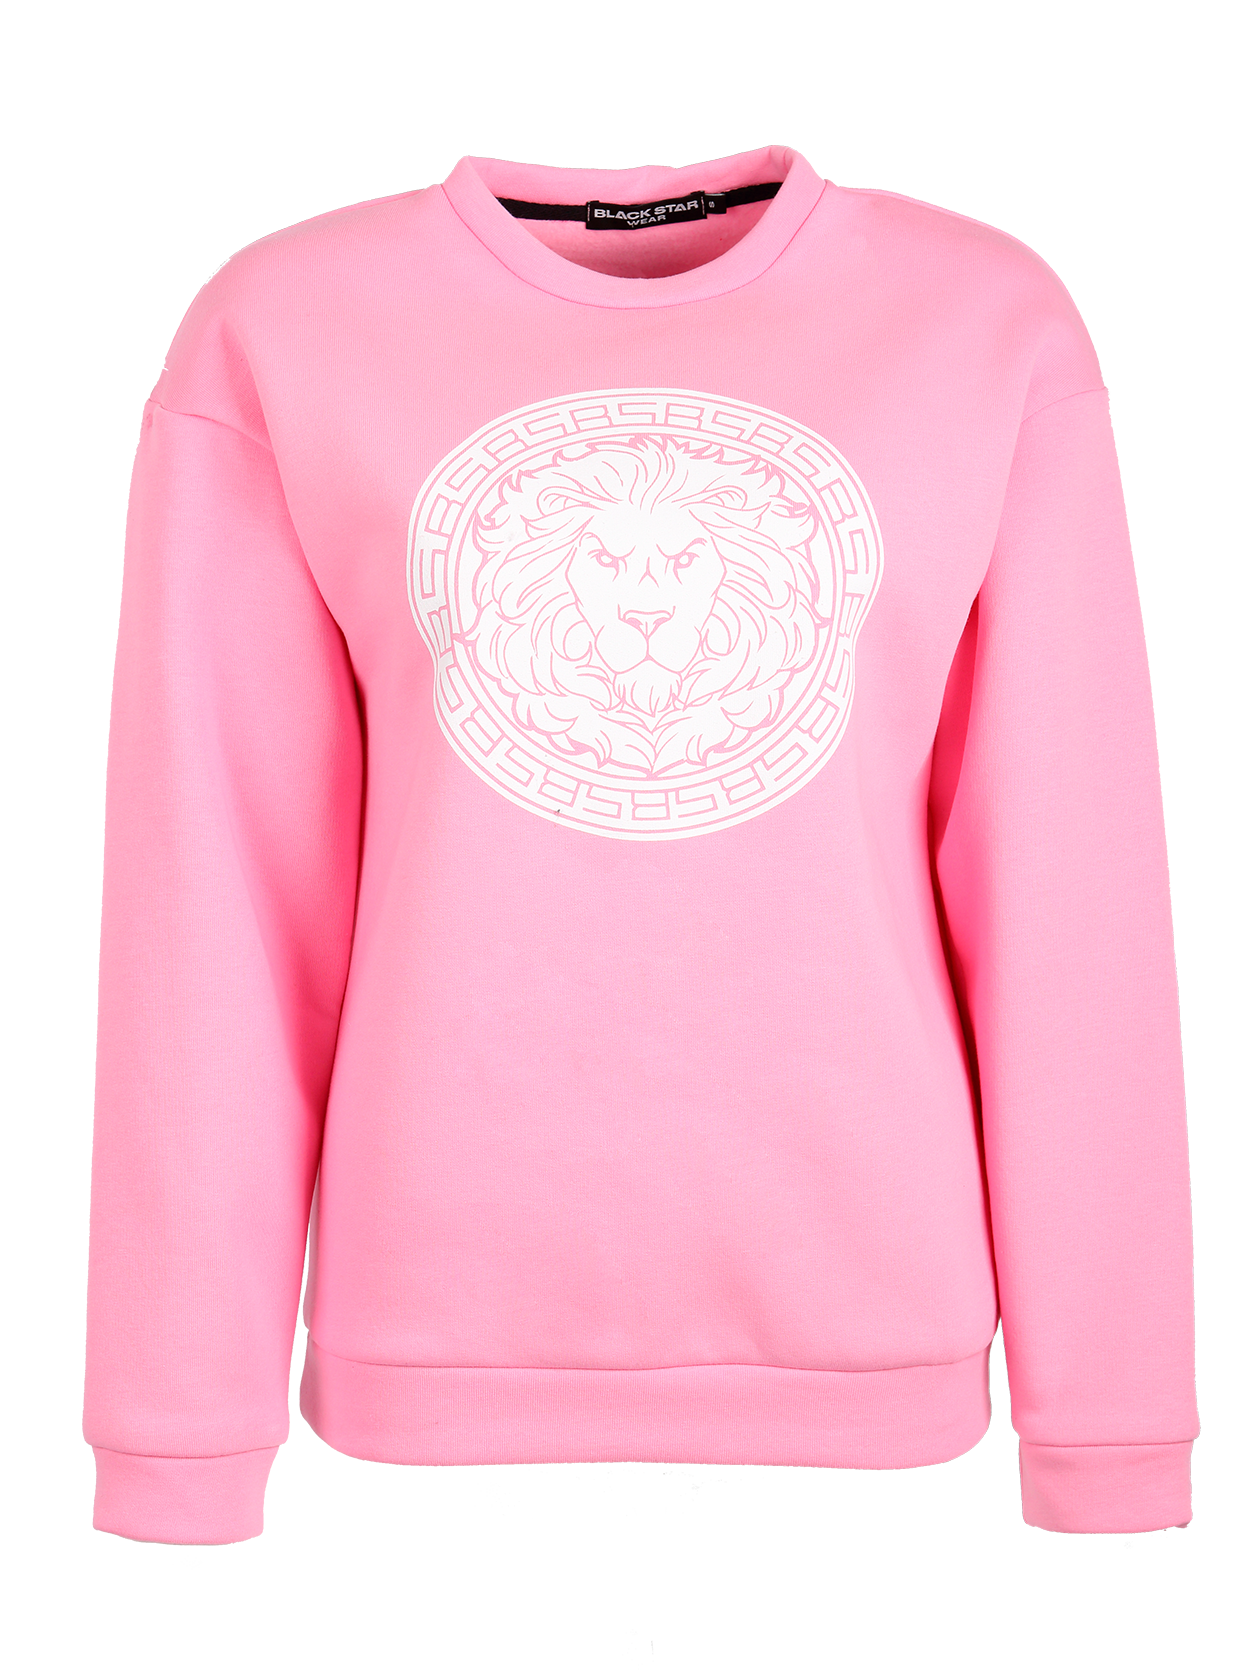 Womens hoodie Logo Black StarSoft and comfy sweatshirt by Black Star Wear. Oversized fit, drop shoulder seams, cuffs, round neck, natural cotton blend. Lions head print on the chest. Avaliable in gray and pink.<br><br>size: L<br>color: Pink<br>gender: female